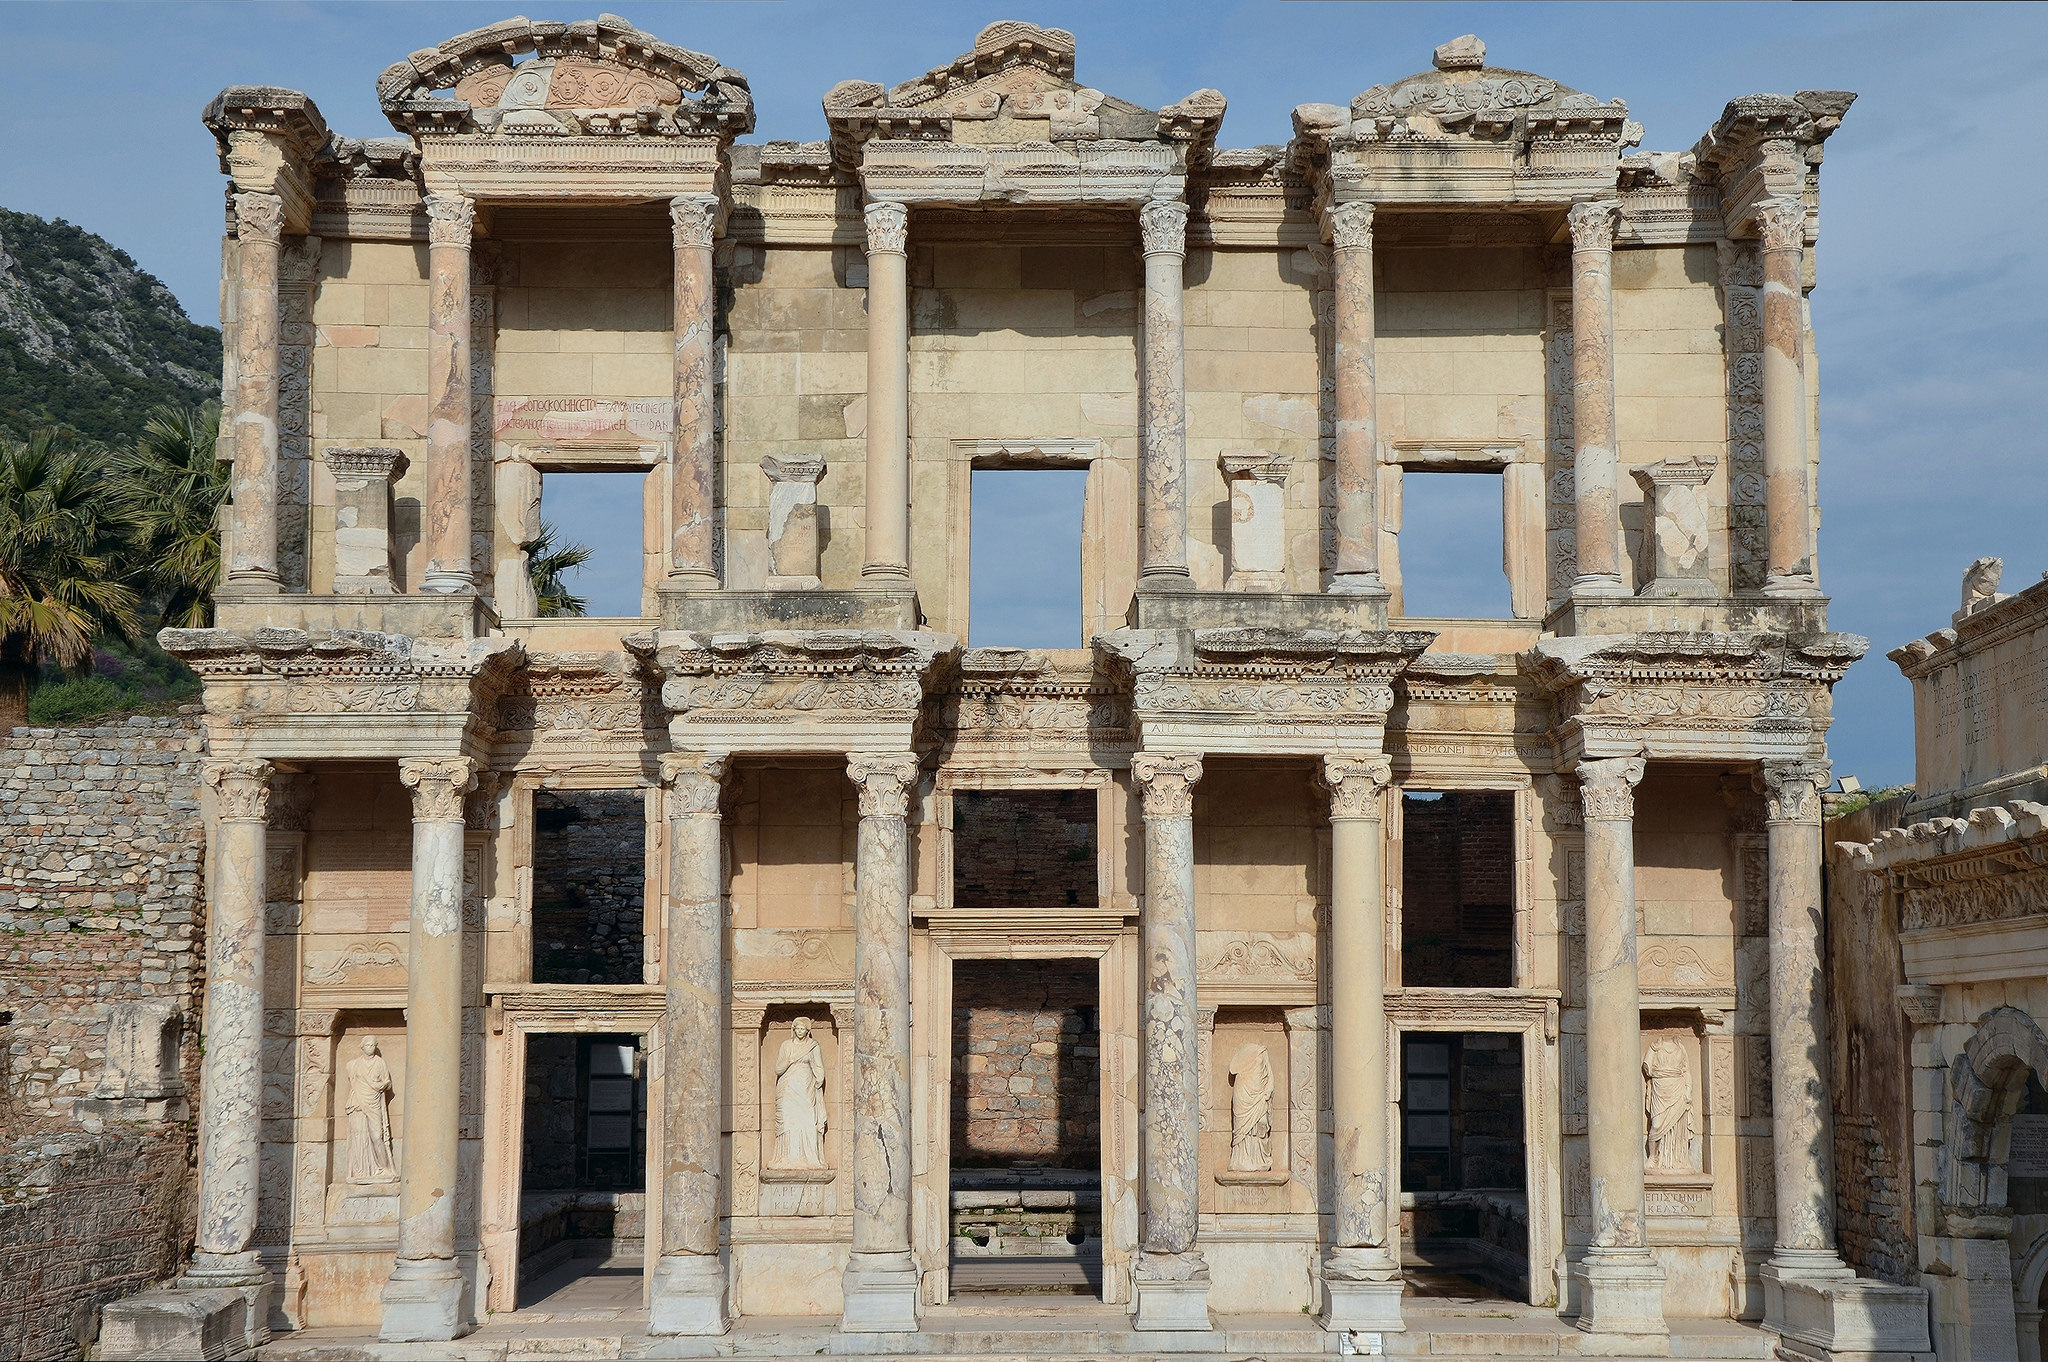 The Library of Celsus at Ephesus (Illustration).